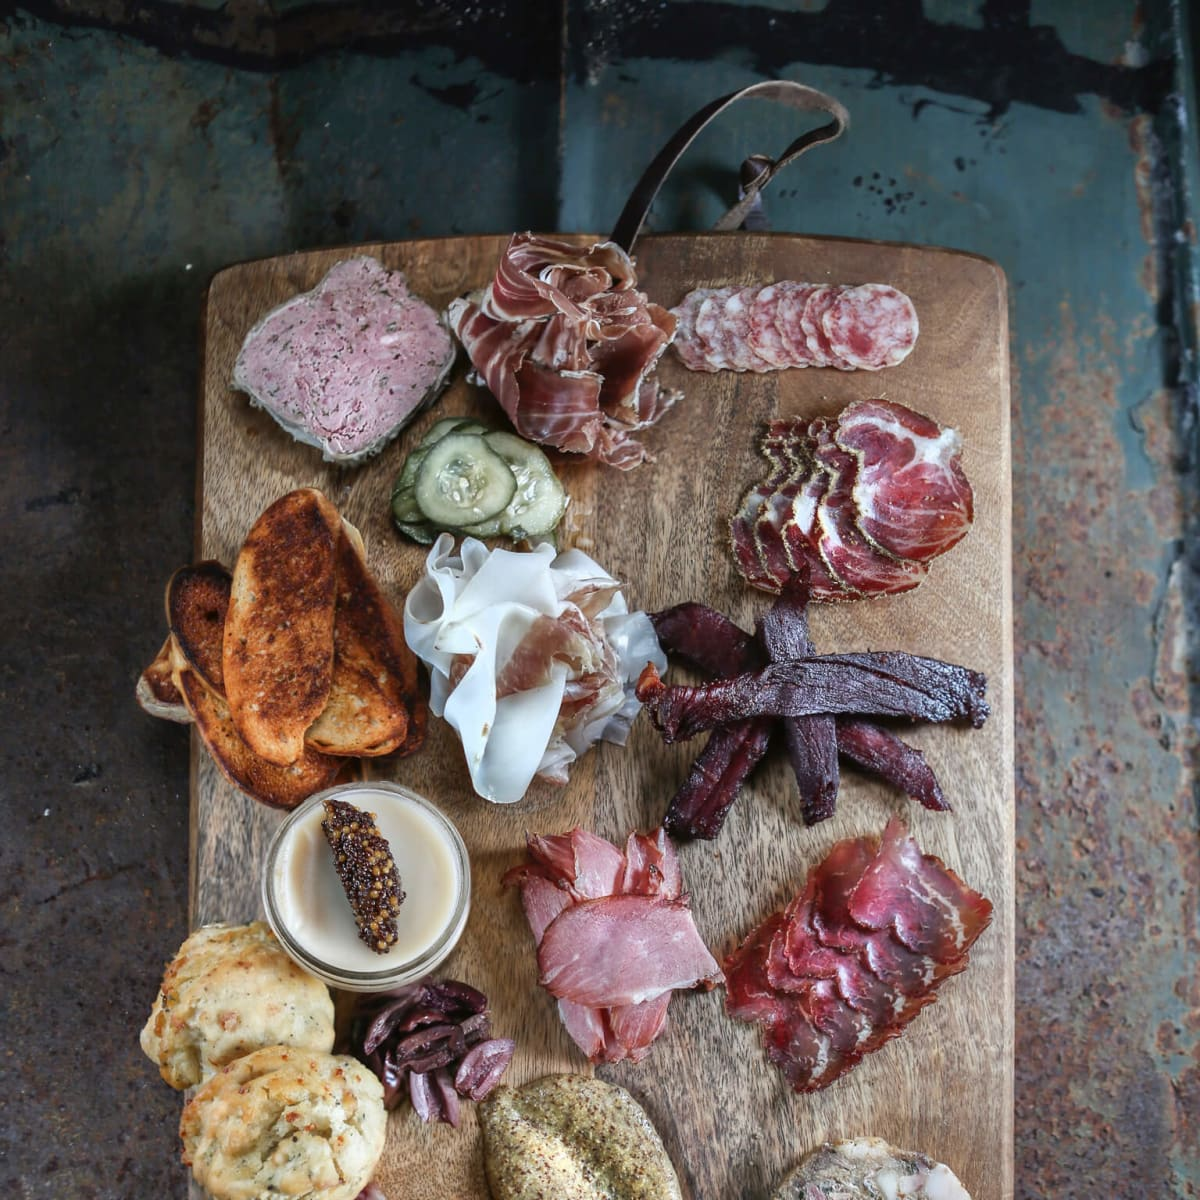 Bacon Bros charcuterie platter